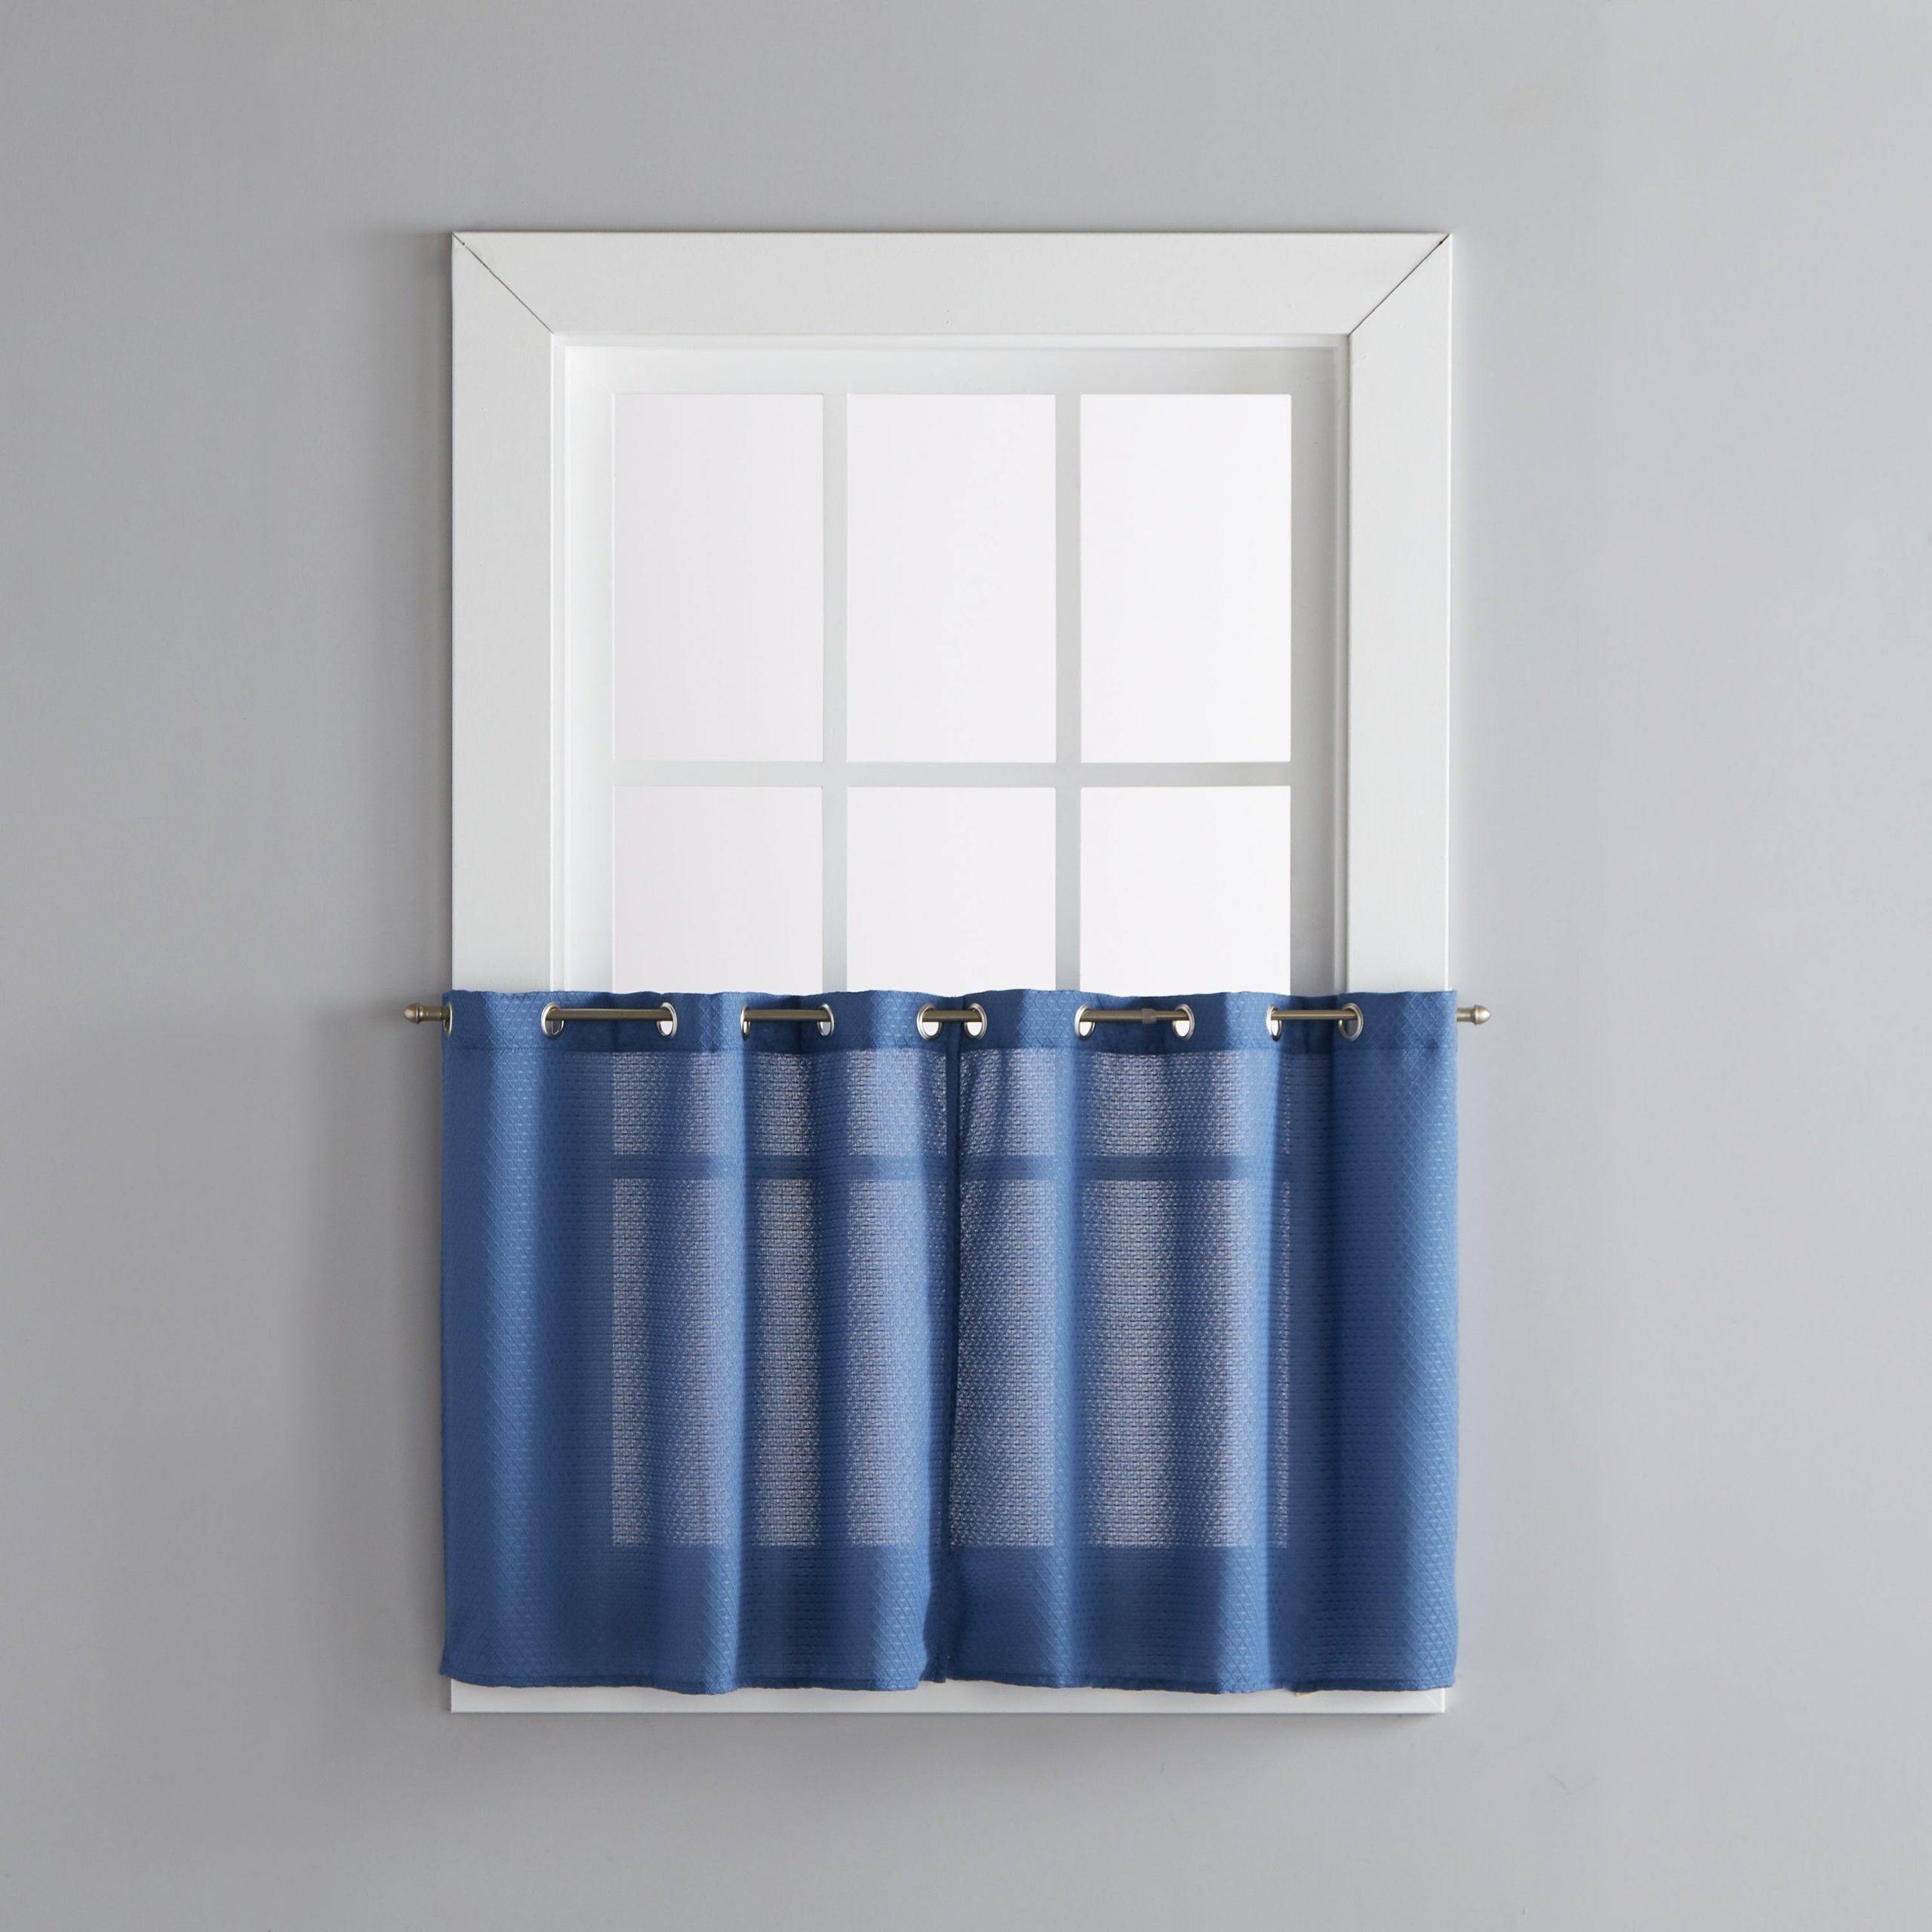 Trendy Skl Home Trio 24 Inch Tier Pair In Denim Intended For Hopscotch 24 Inch Tier Pairs In Neutral (View 10 of 20)